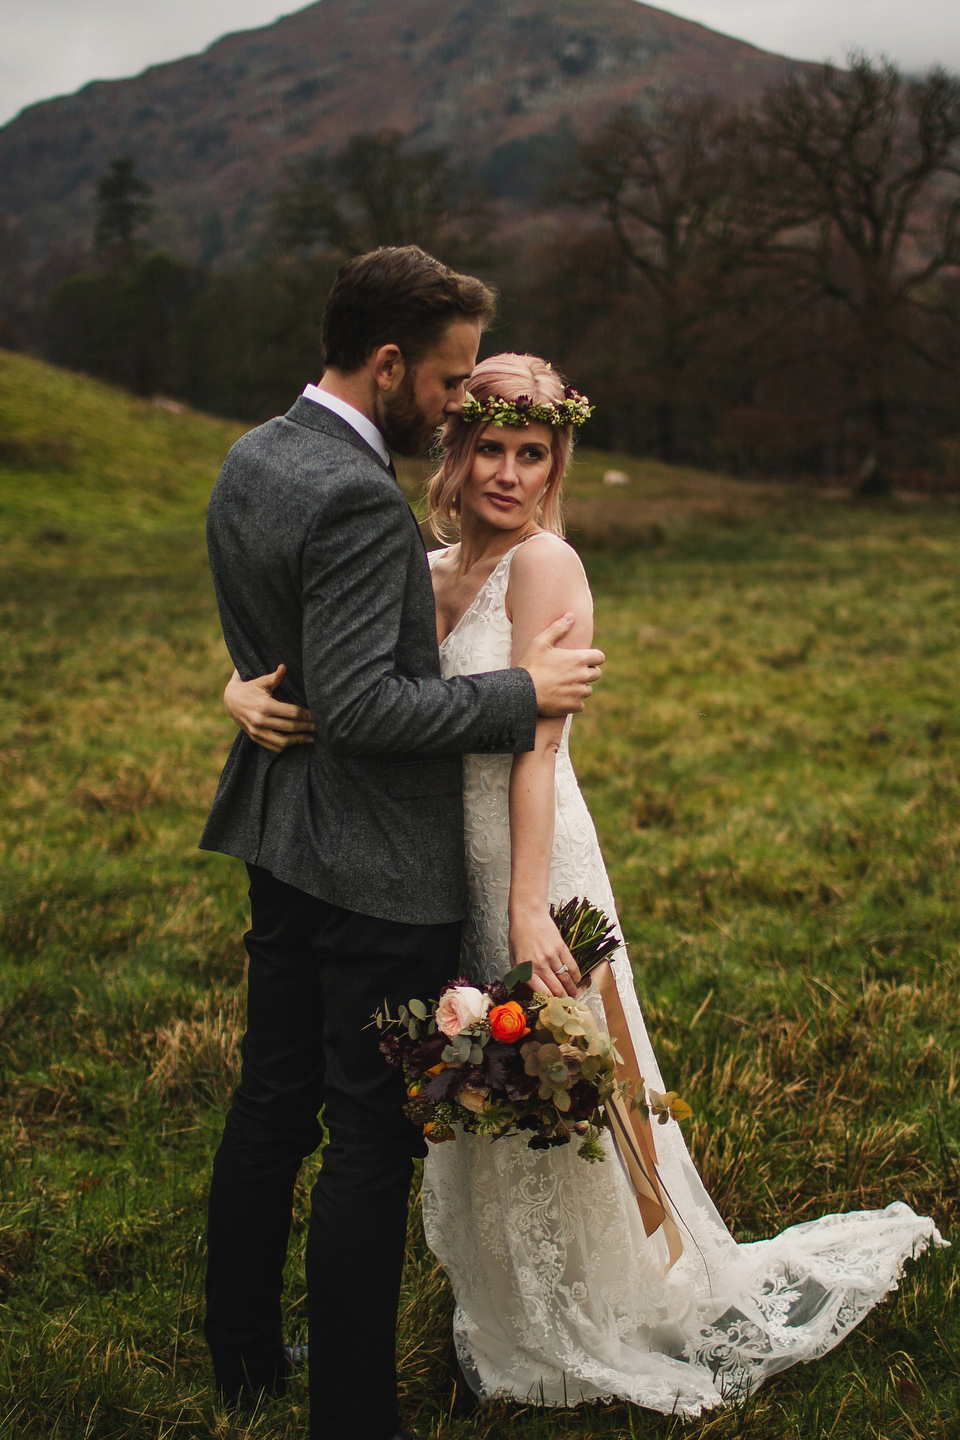 Iris by Claire Pettibone for an Intimate and Slow Paced Outdoor Winter Wedding (Weddings )